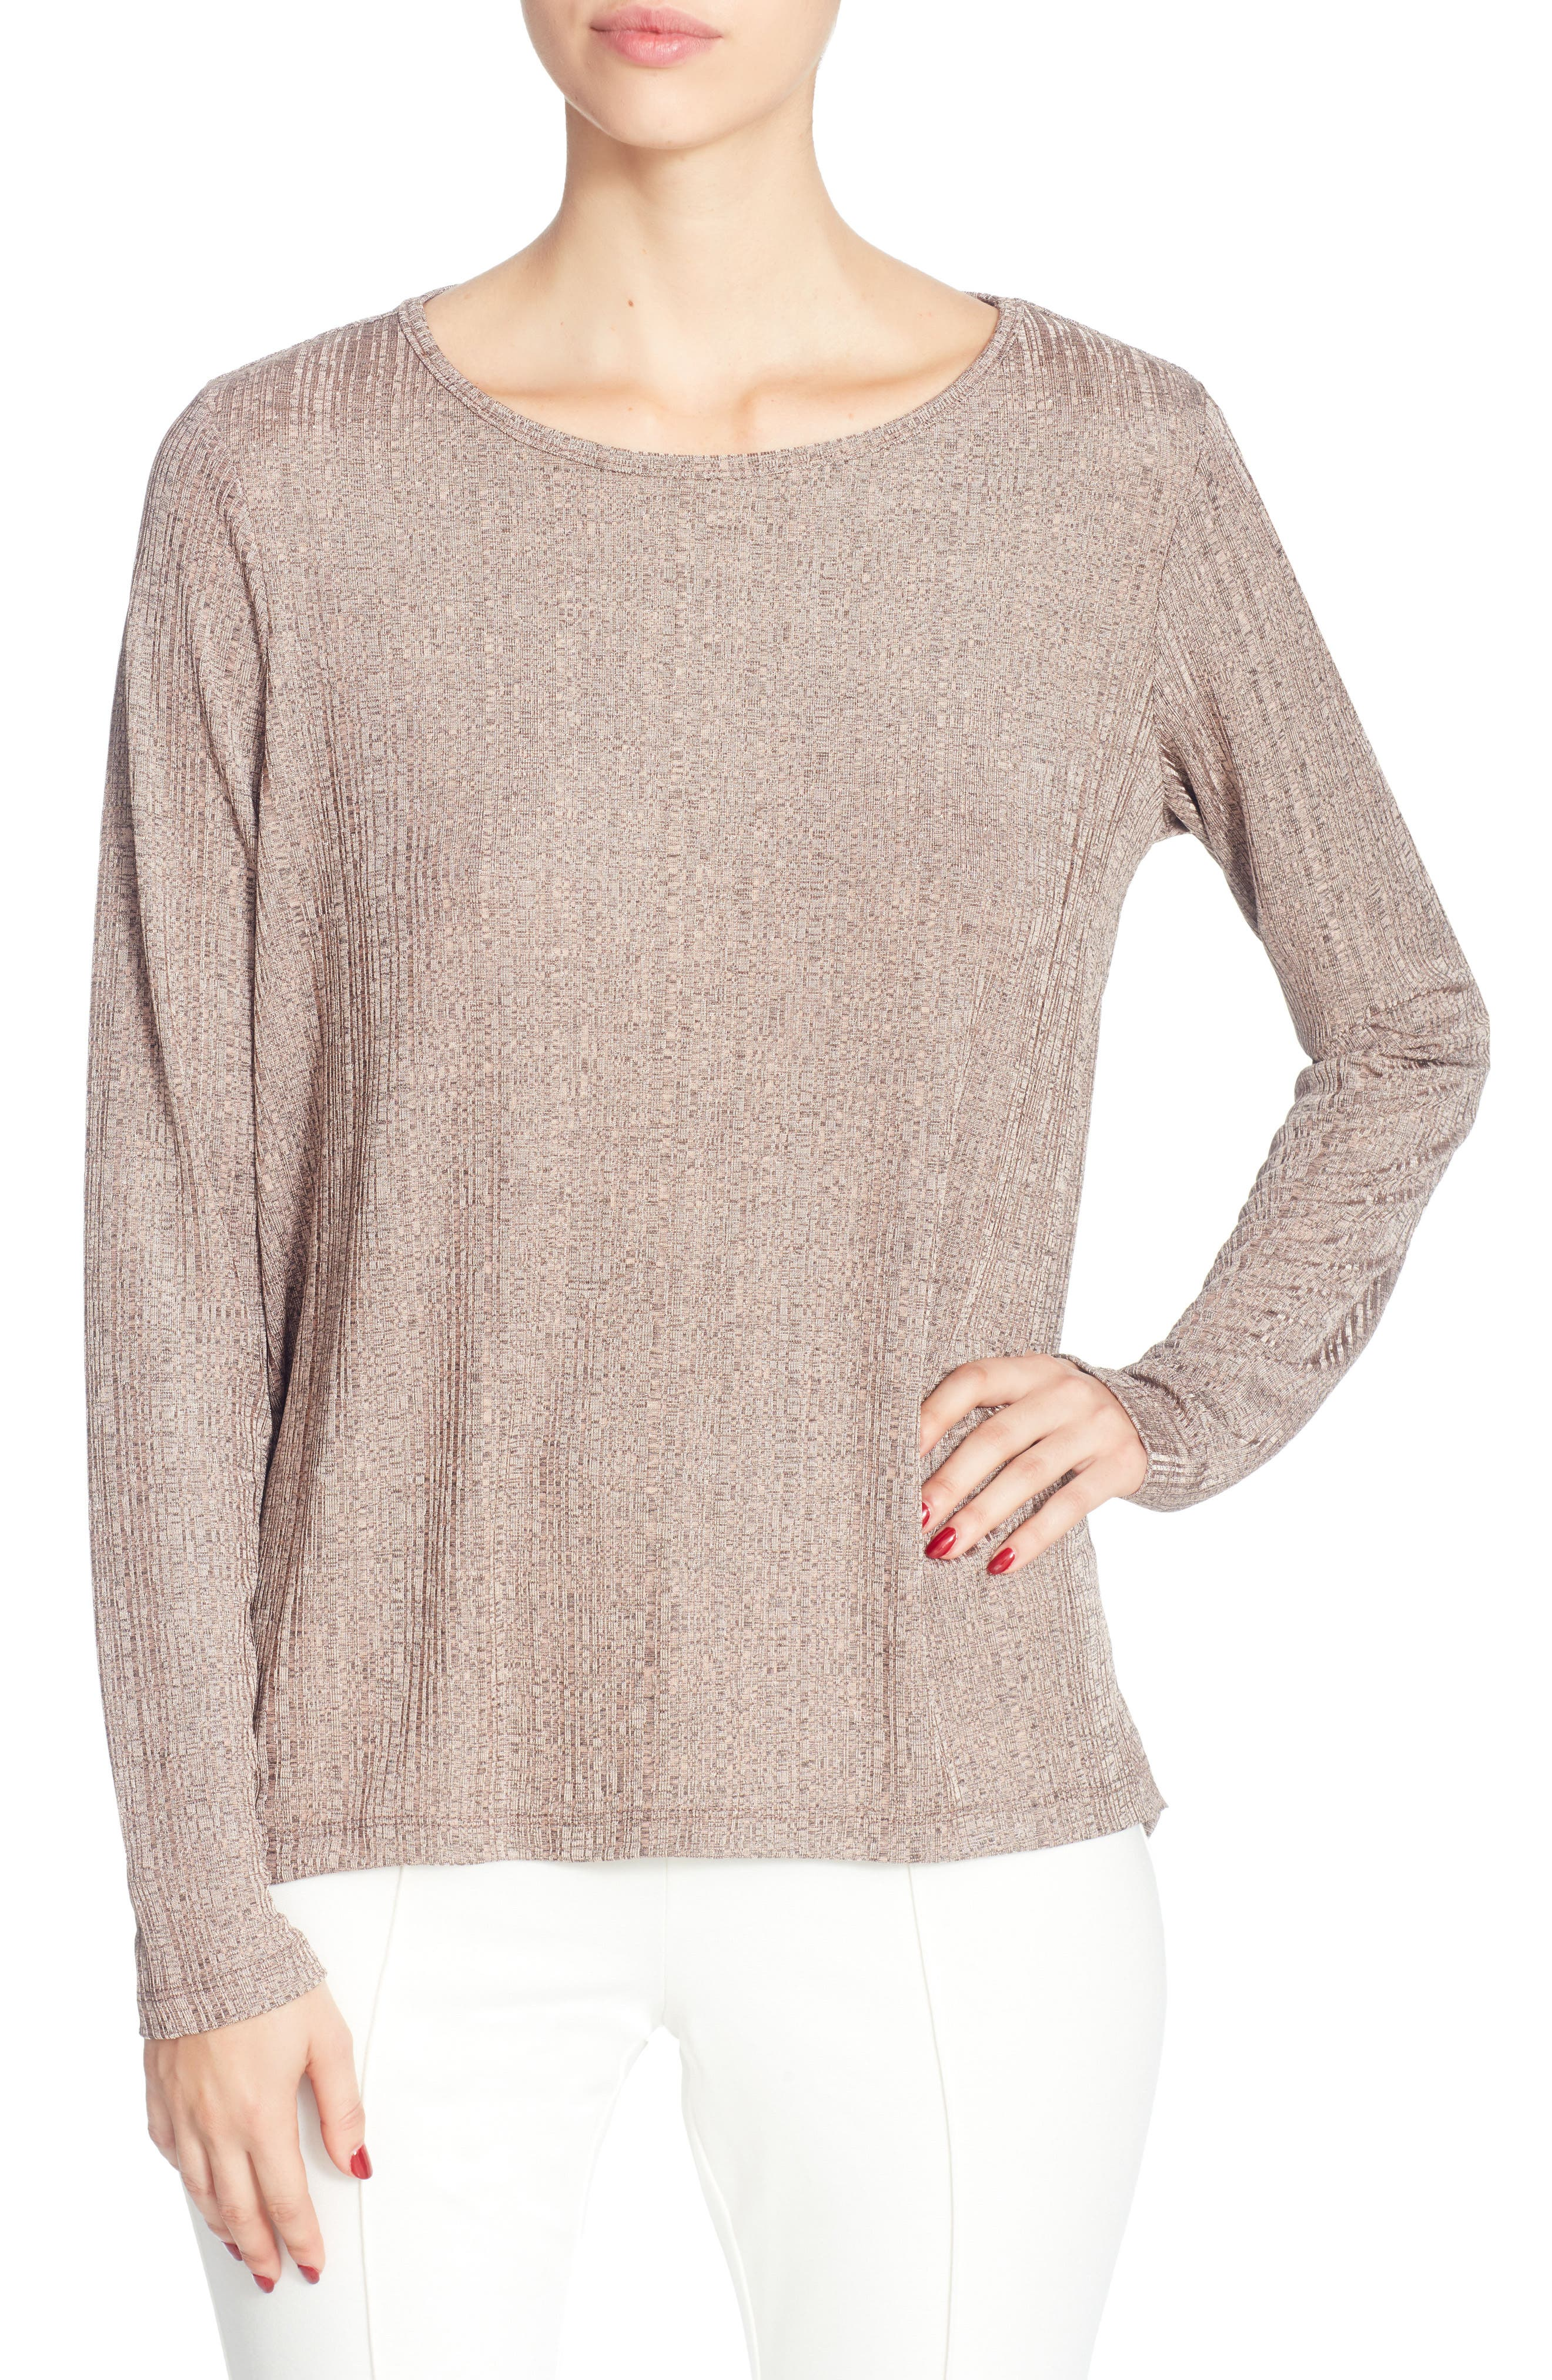 Main Image - Catherine Catherine Malandrino Remi Metallic Knit Top